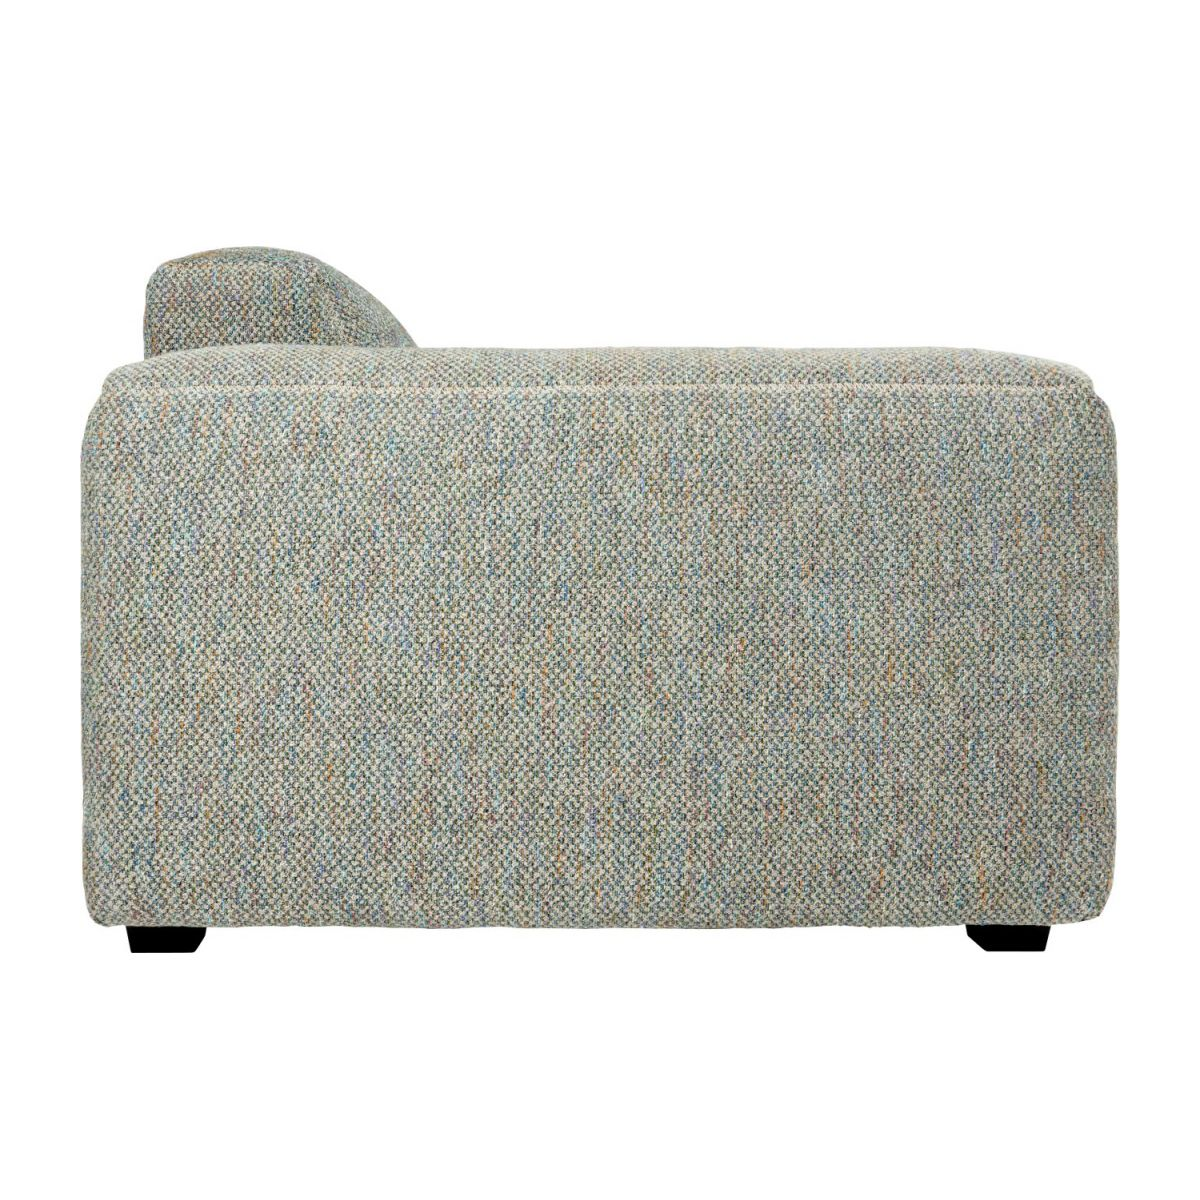 2 seater sofa in Bellagio fabric, organic green n°5